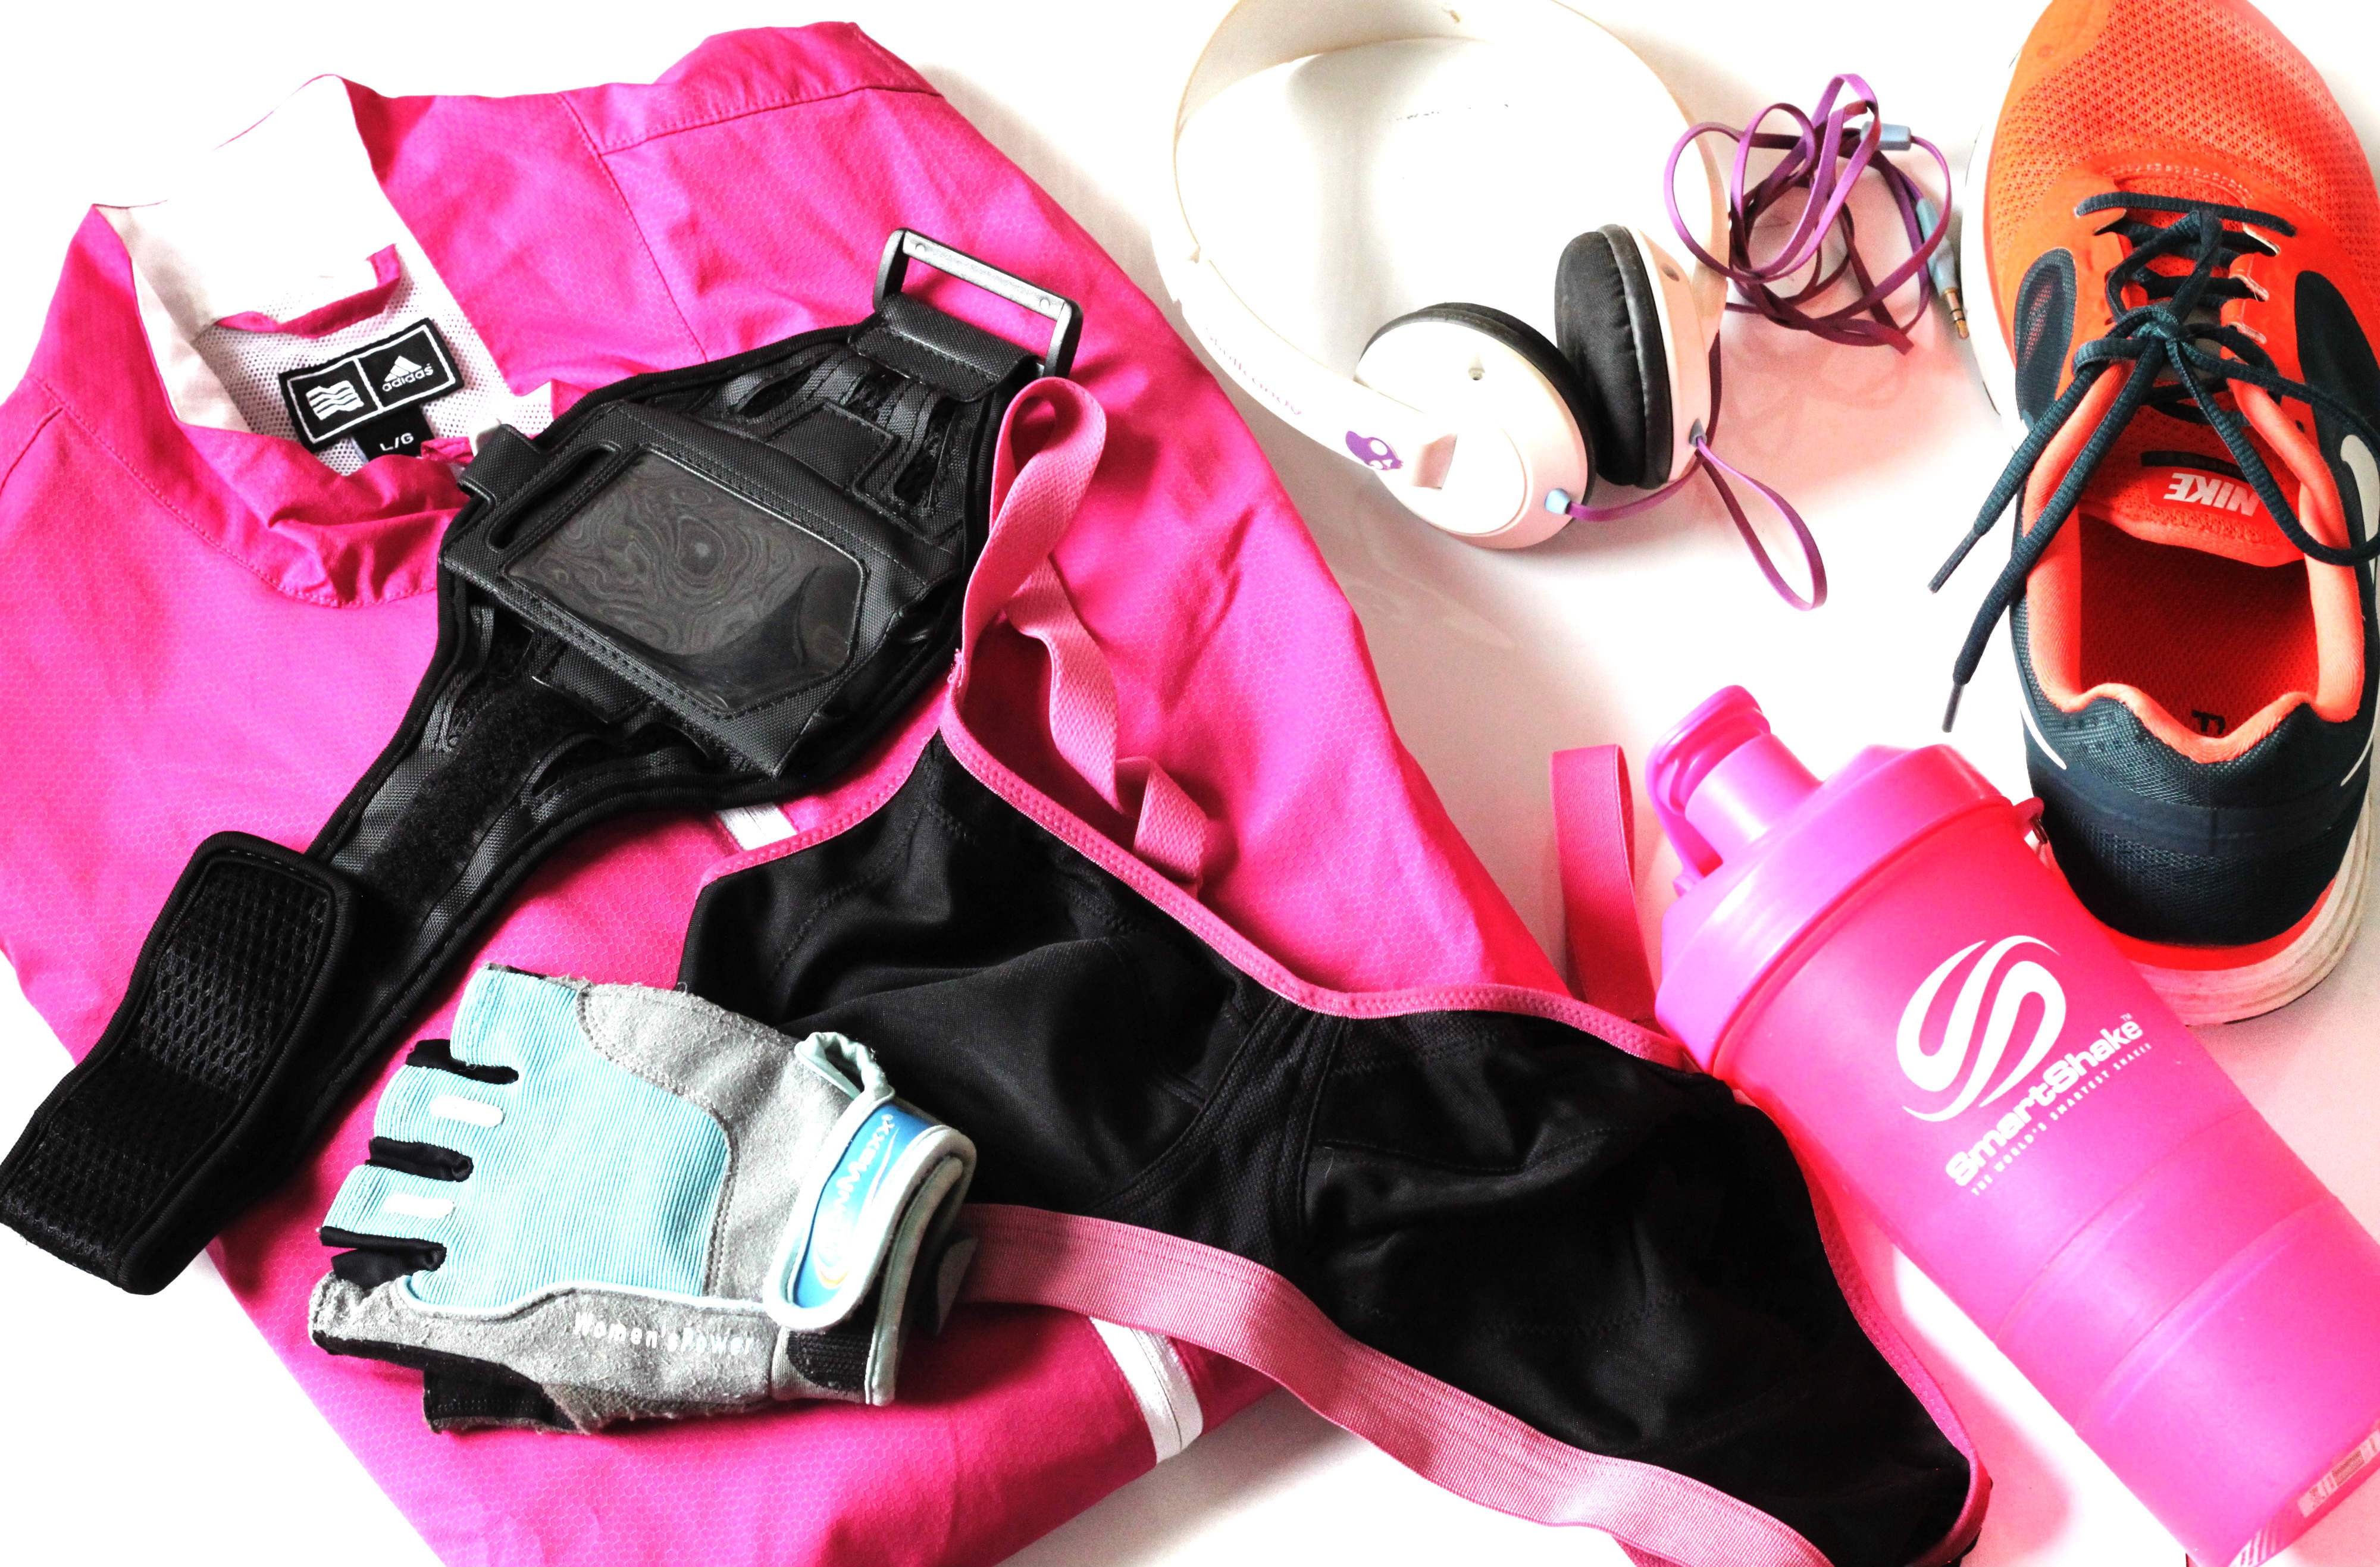 d4f5f362f8 Never Leave Home Without These Things In Your Gym Bag - Gym ...